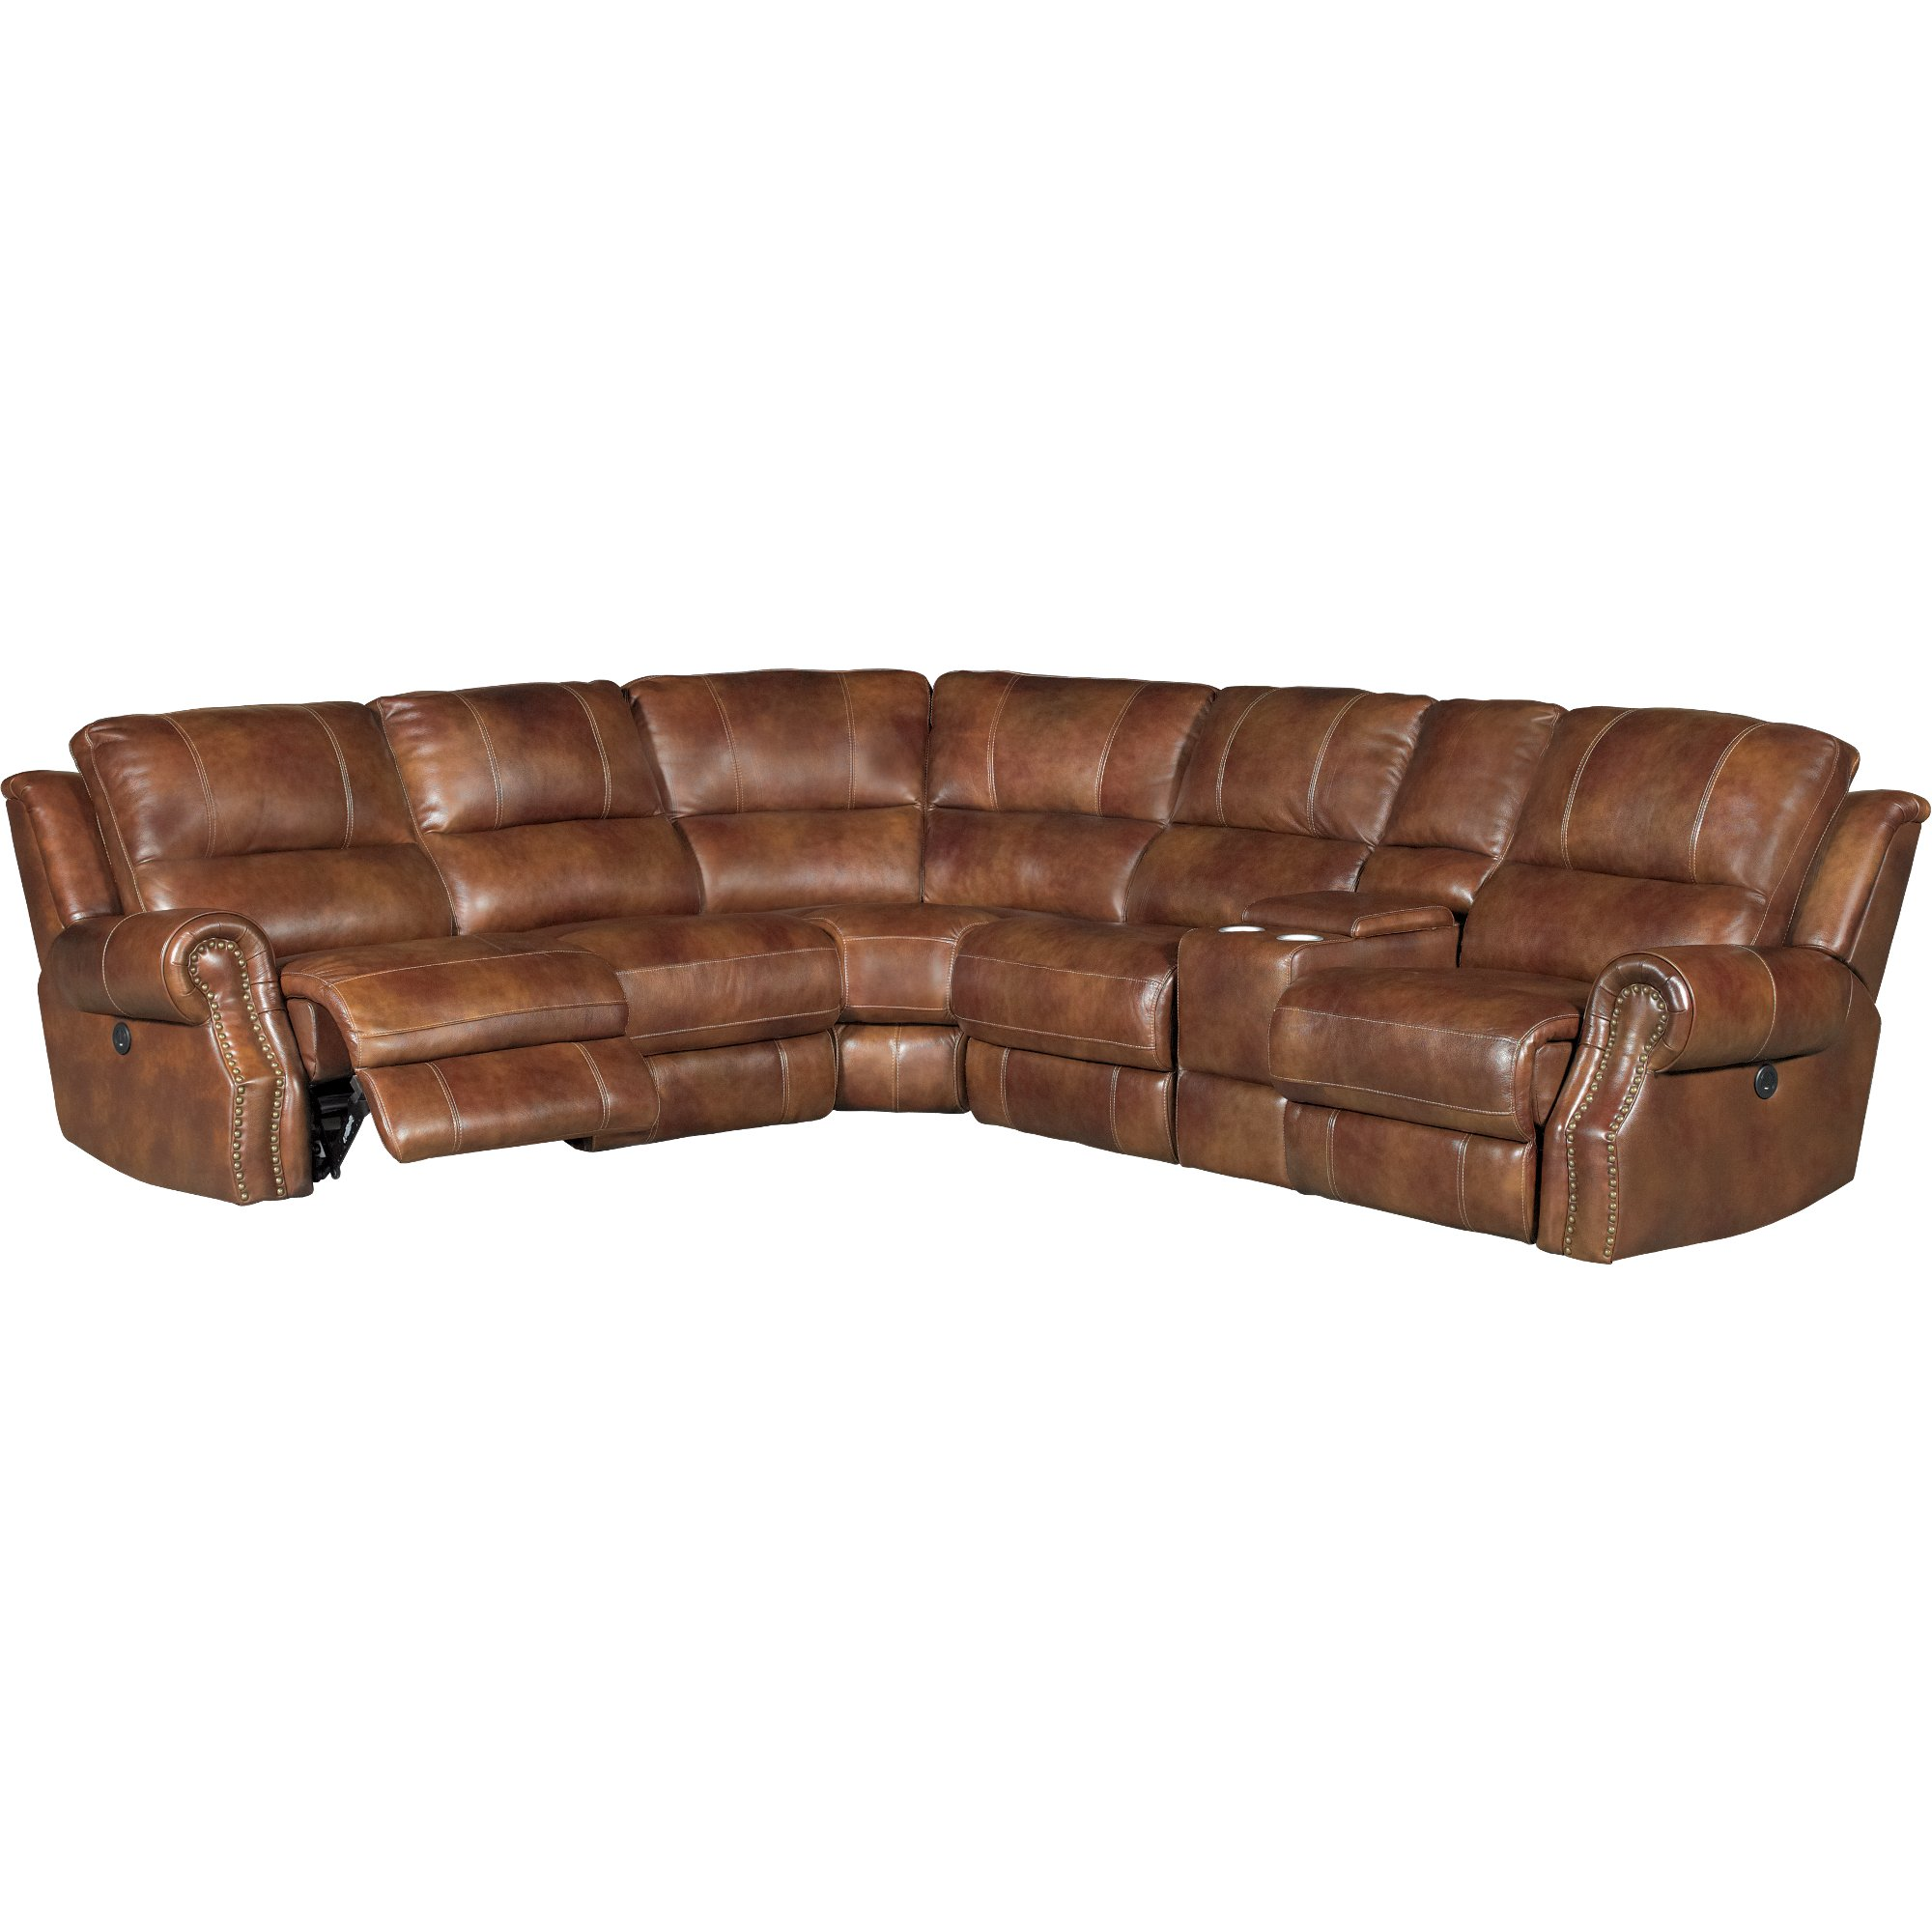 ... Chestnut Brown Leather-Match 6-Piece Power Reclining Sectional - Nailhead ...  sc 1 st  RC Willey : nailhead leather sectional - Sectionals, Sofas & Couches